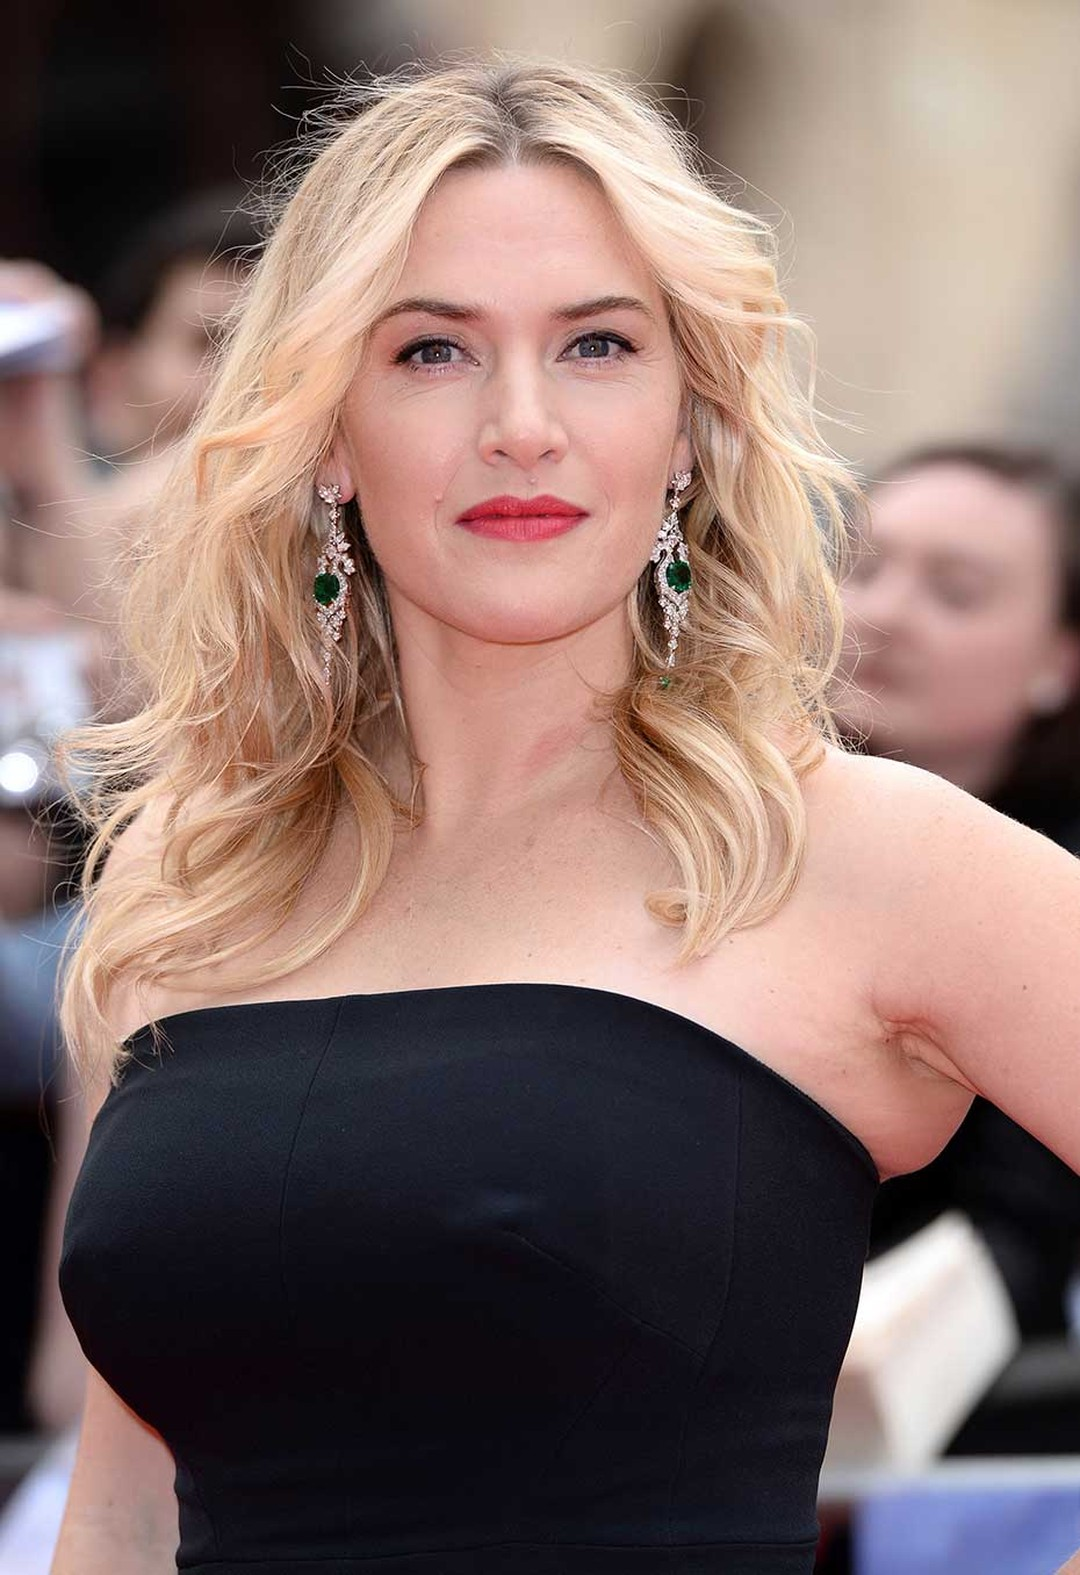 Kate Winslet looks radiant in David Morris emerald and diamond earrings as she says hello to fans at the London premiere of her film Divergent in March 2014.